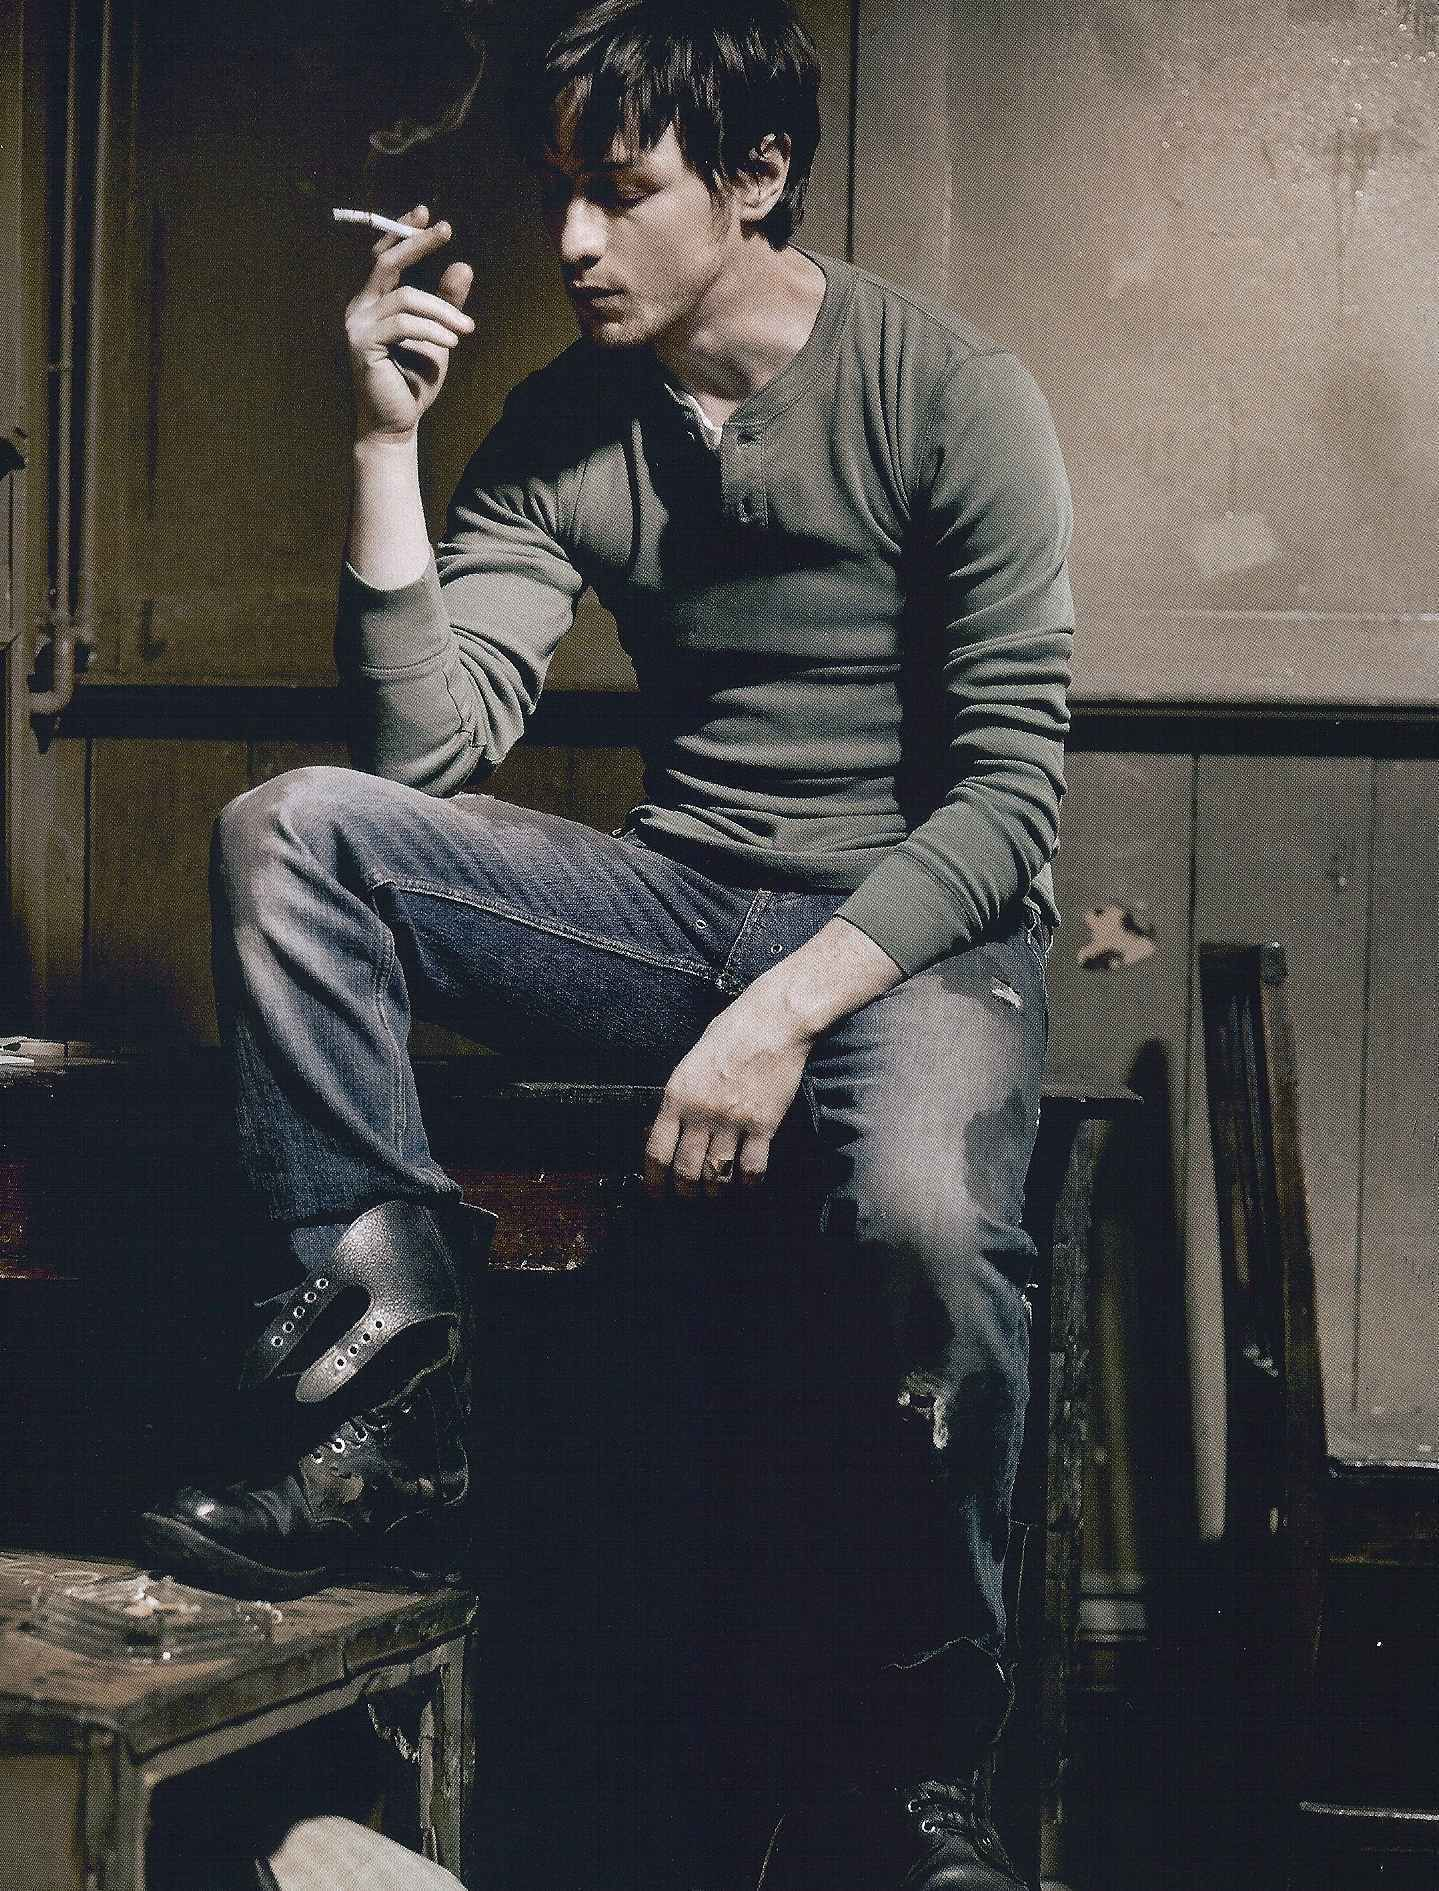 James McAvoy smoking a cigarette (or weed)